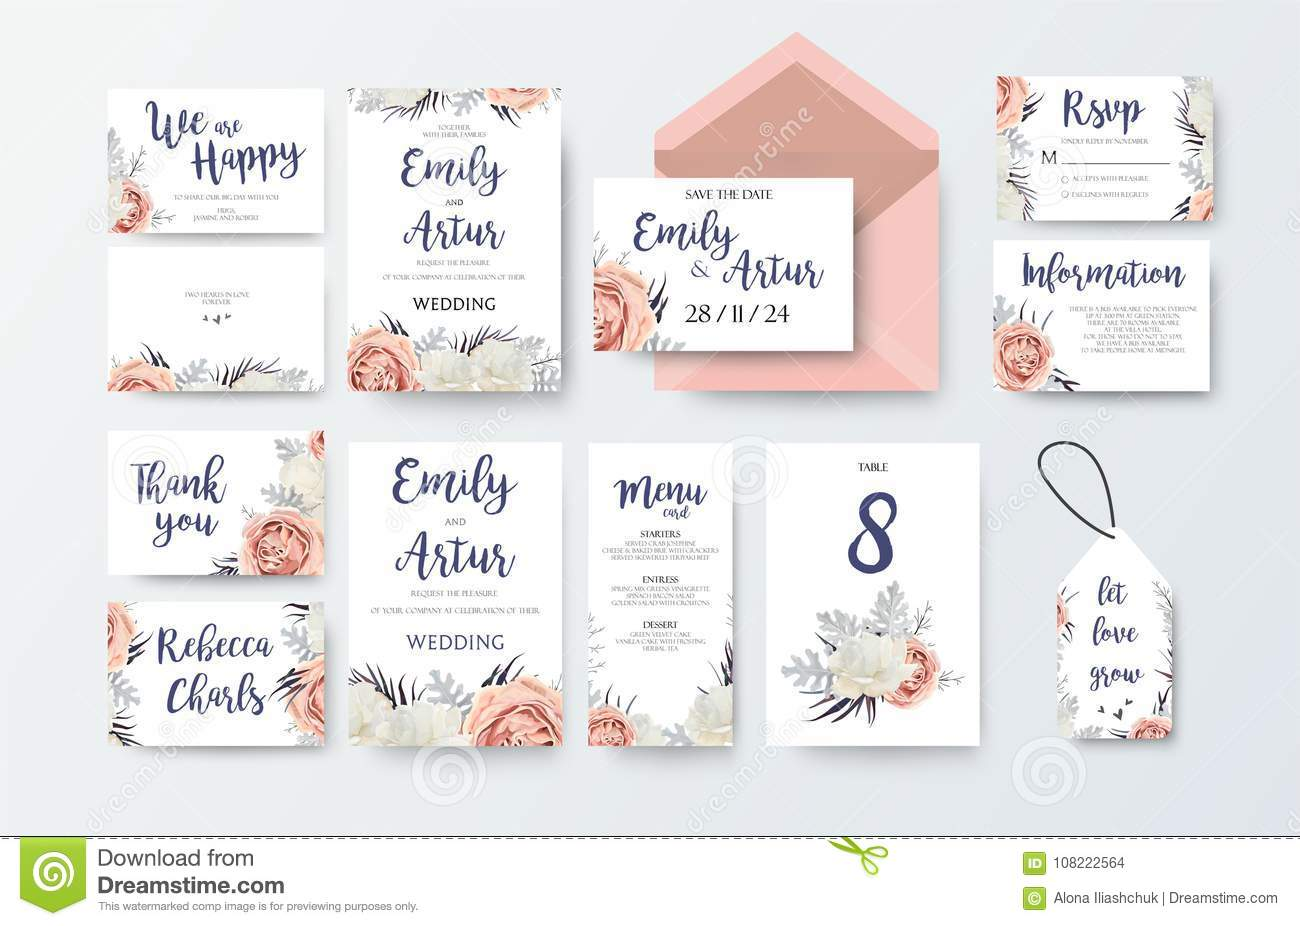 Wedding invite, invitation menu, thank you, rsvp, label card vector floral design with pink peach garden Rose, white peony flower